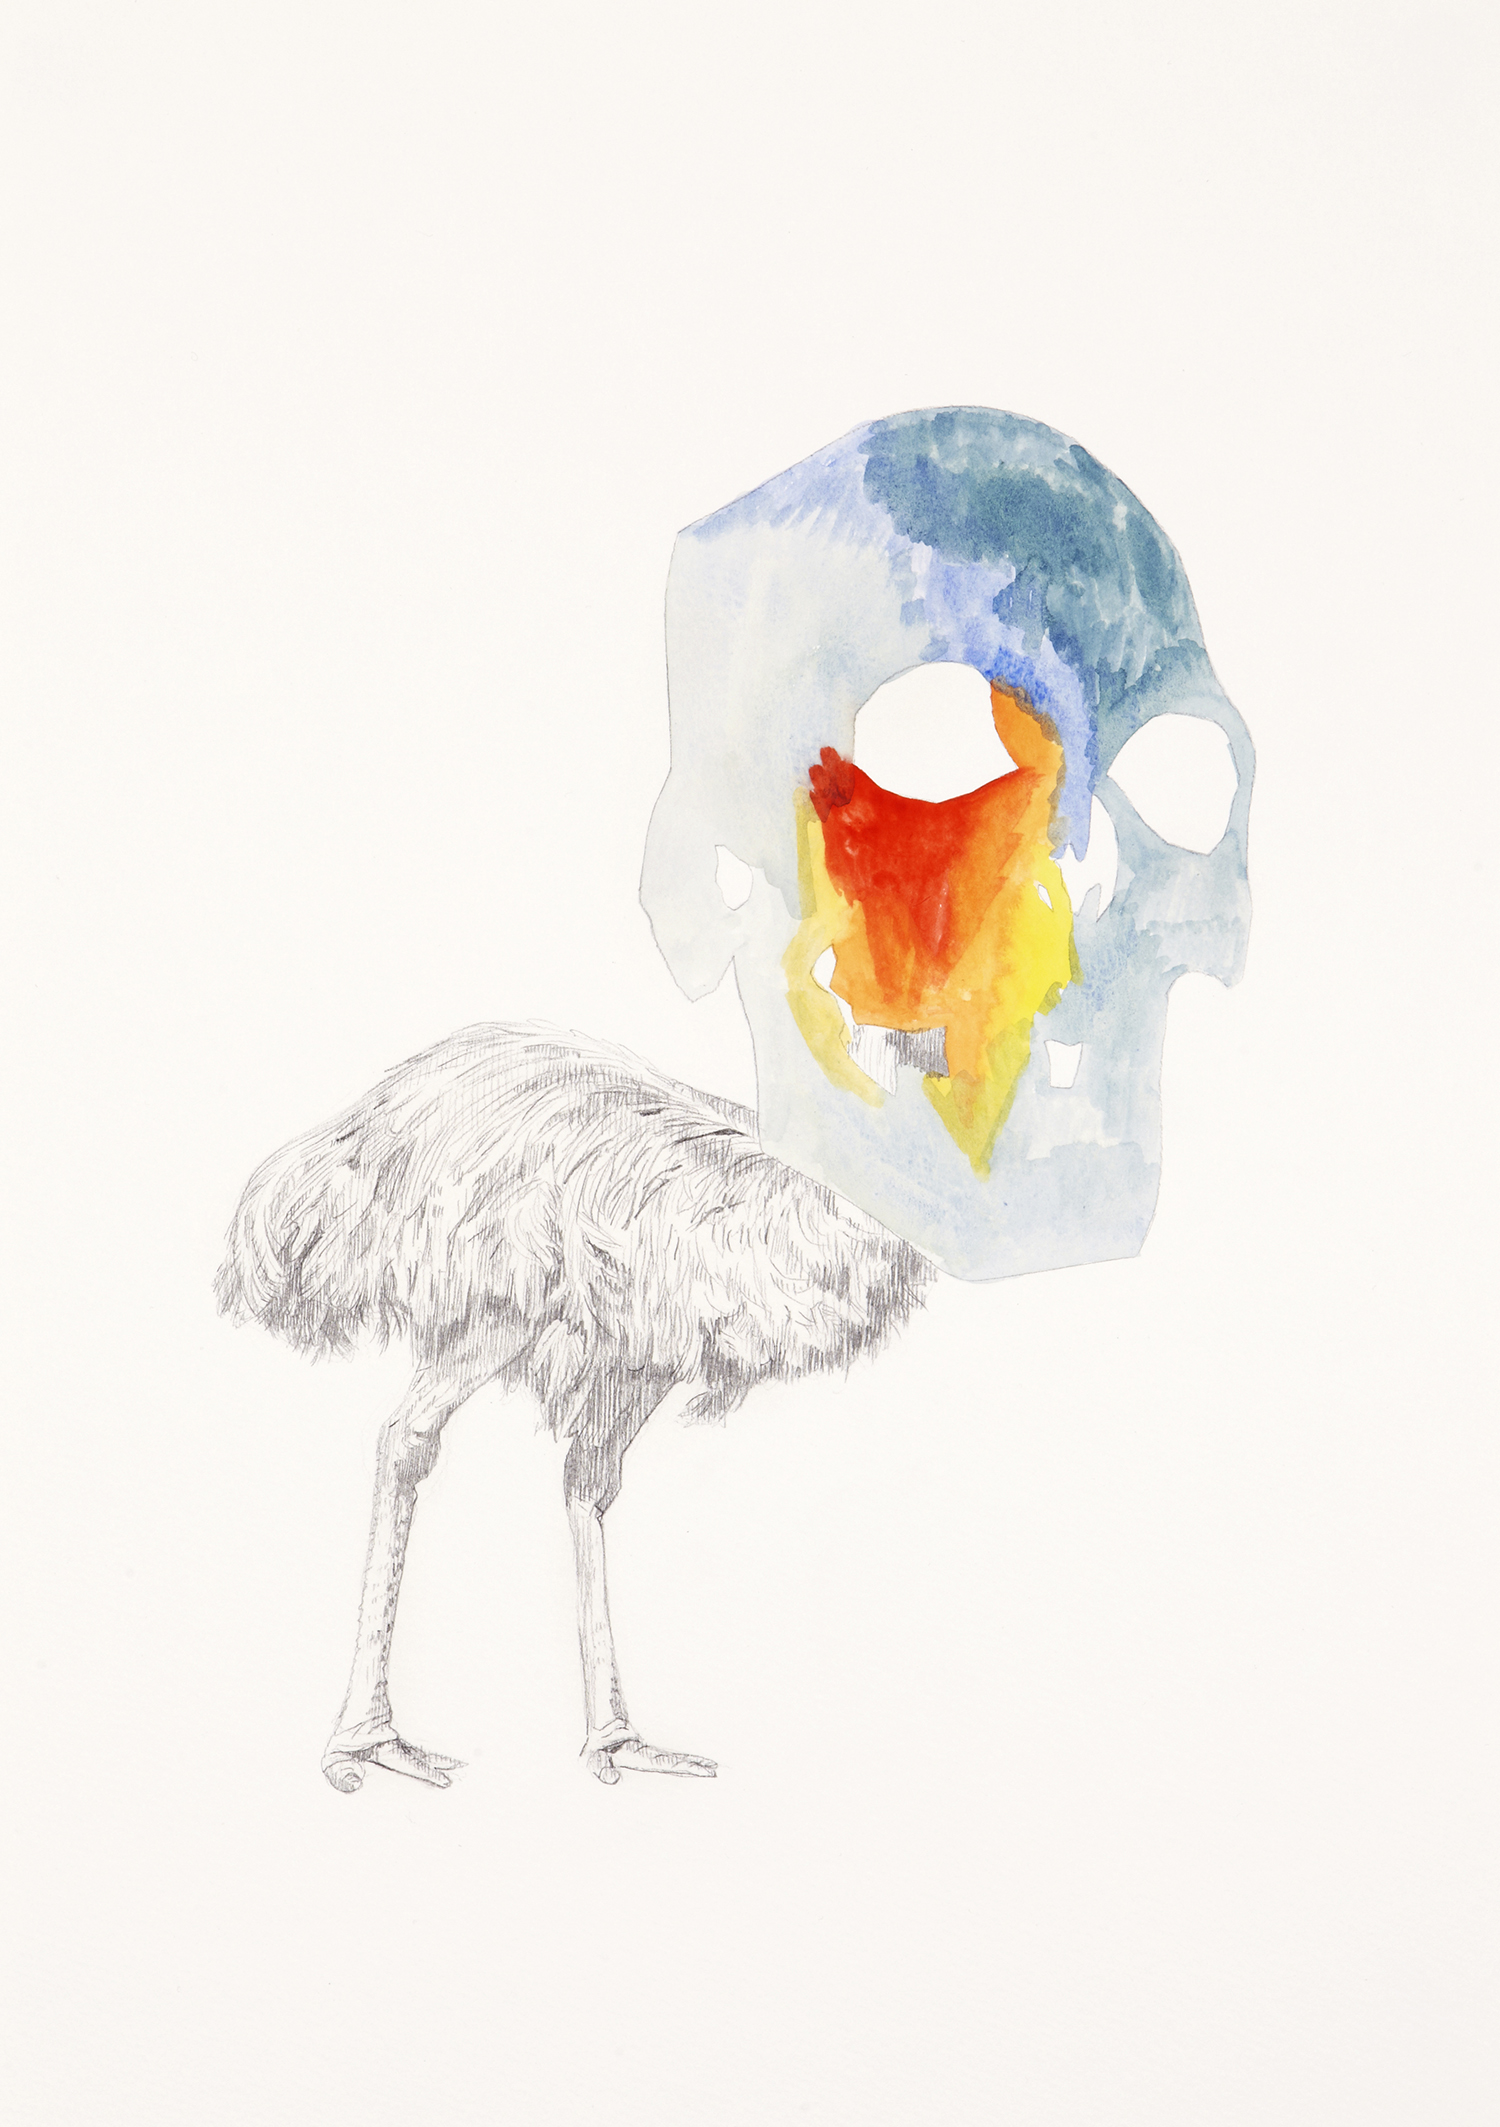 Skull Centric Behaviour #20, 2011, Watercolour and pencil on paper, 42.0 x 29.7 cm, Photo: Sam Scoufos